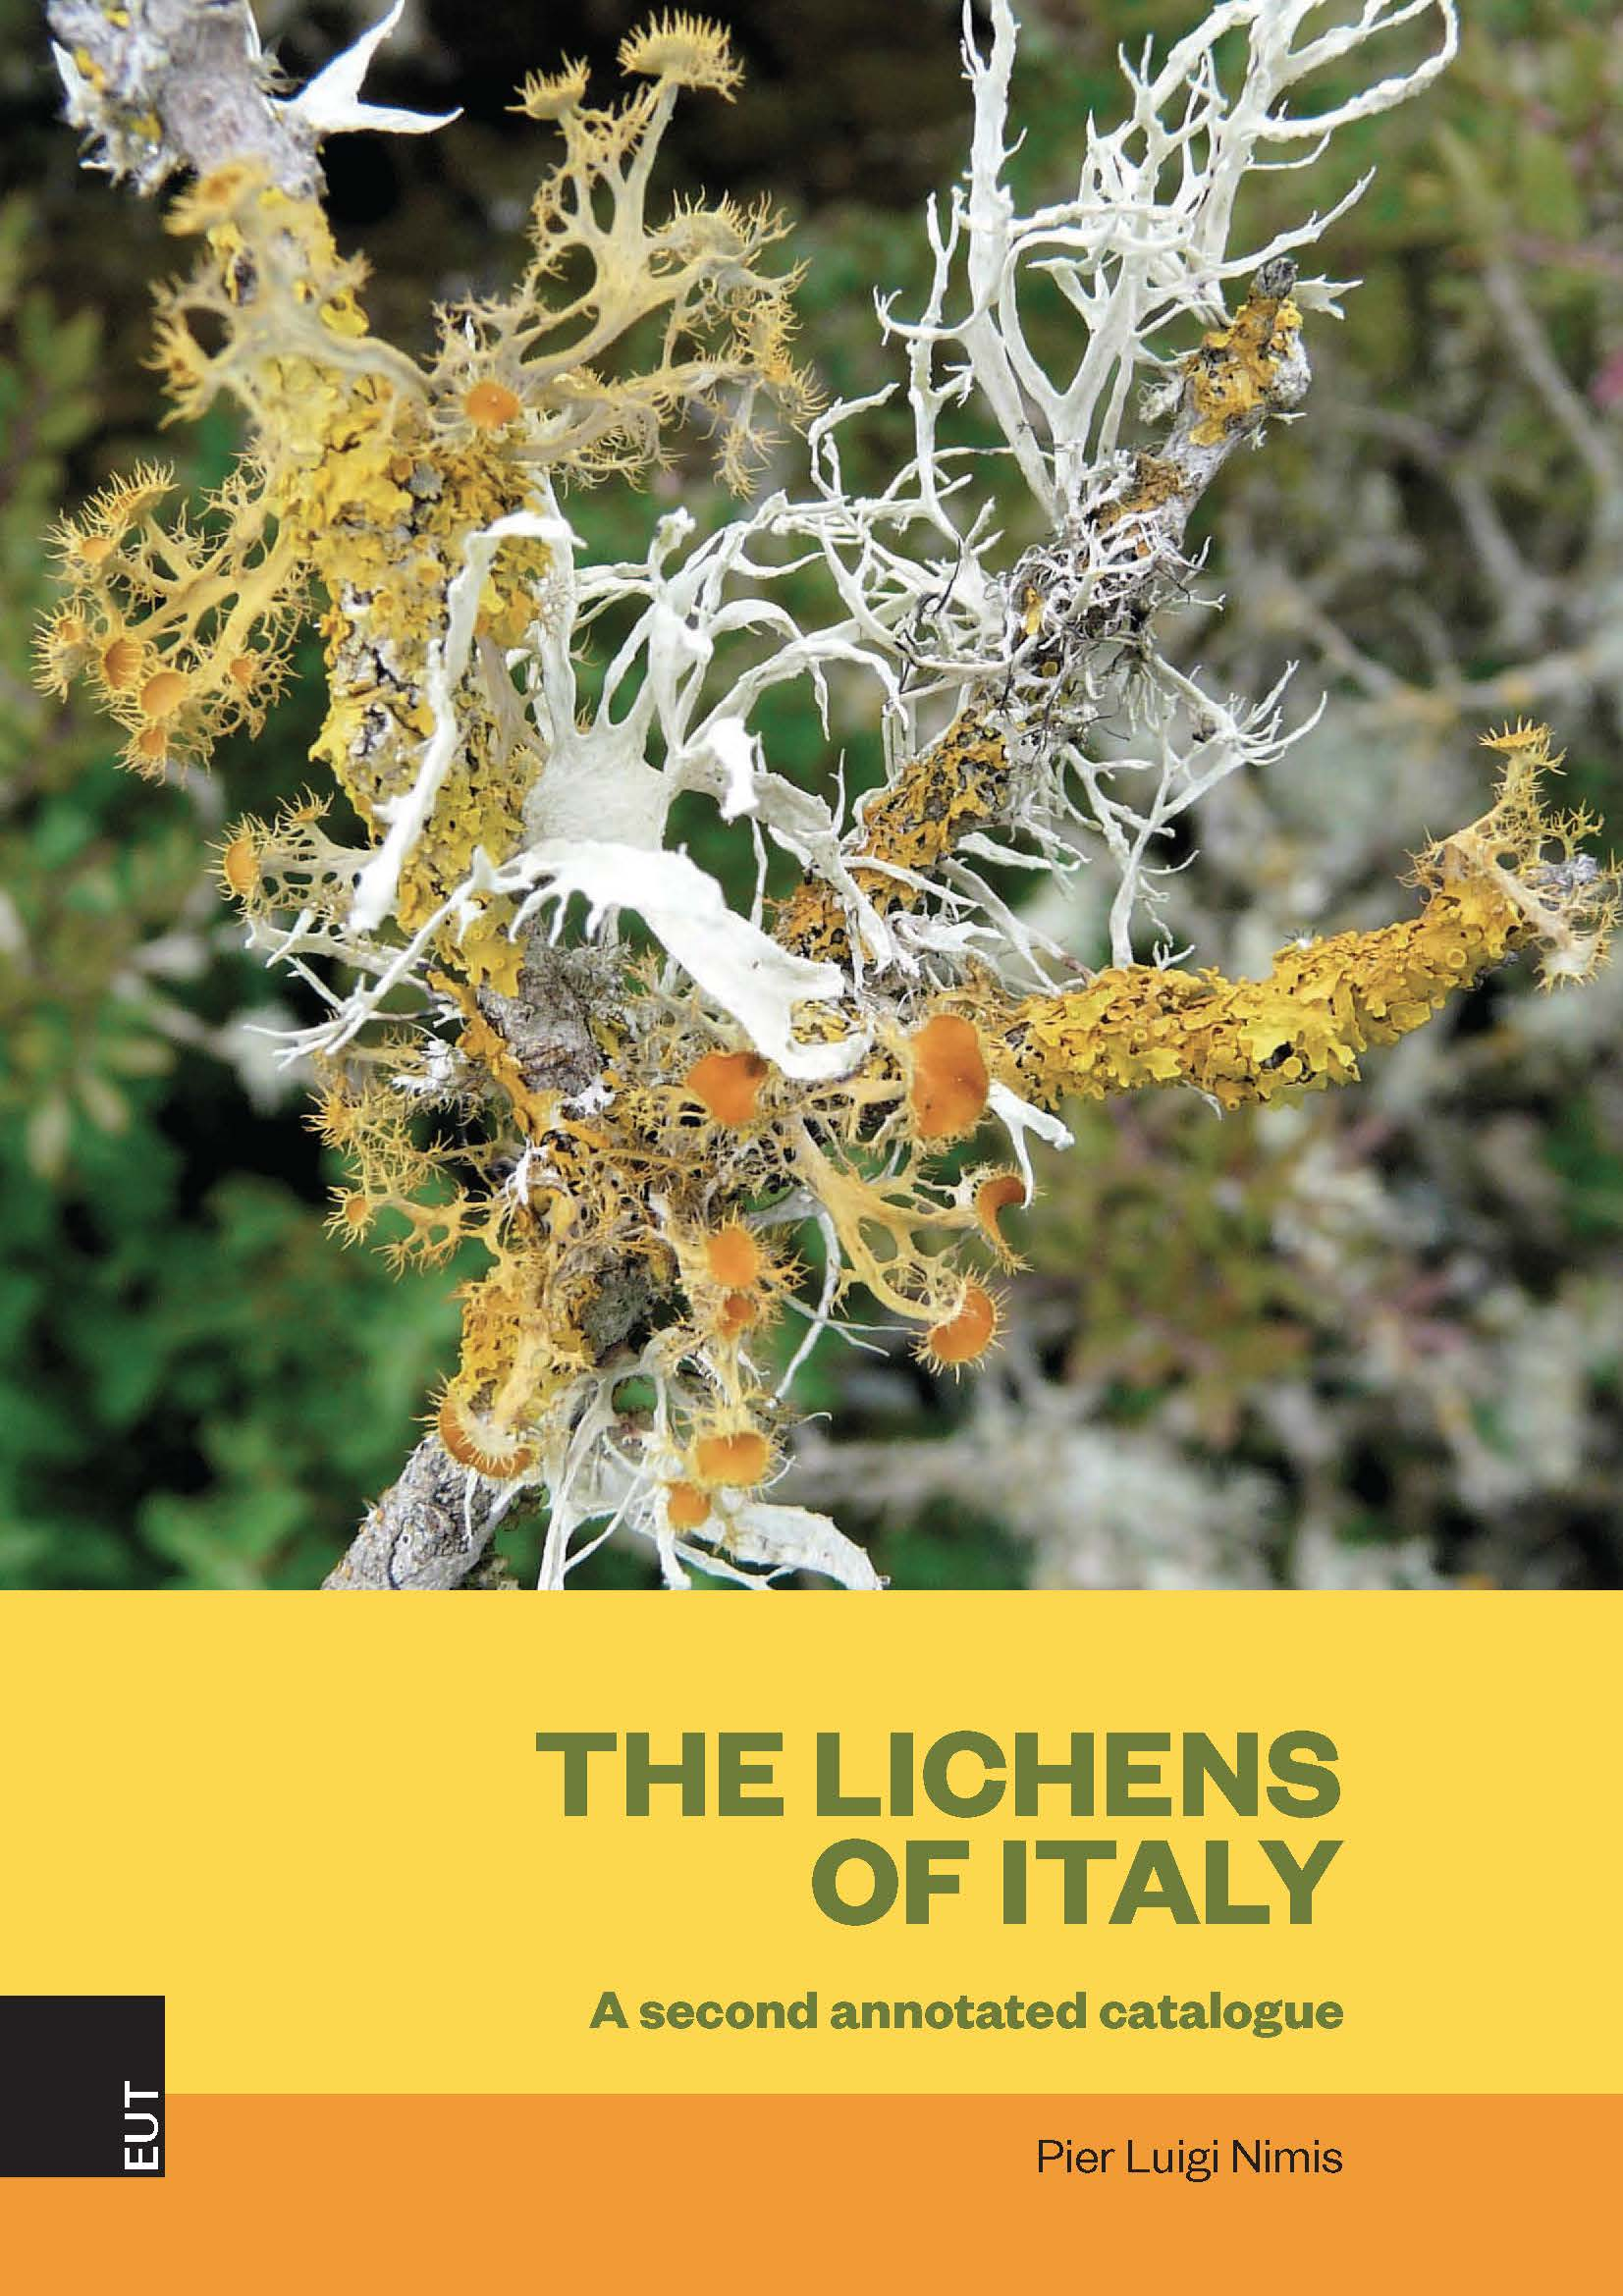 The lichens of Italy. A second annotated catalogue